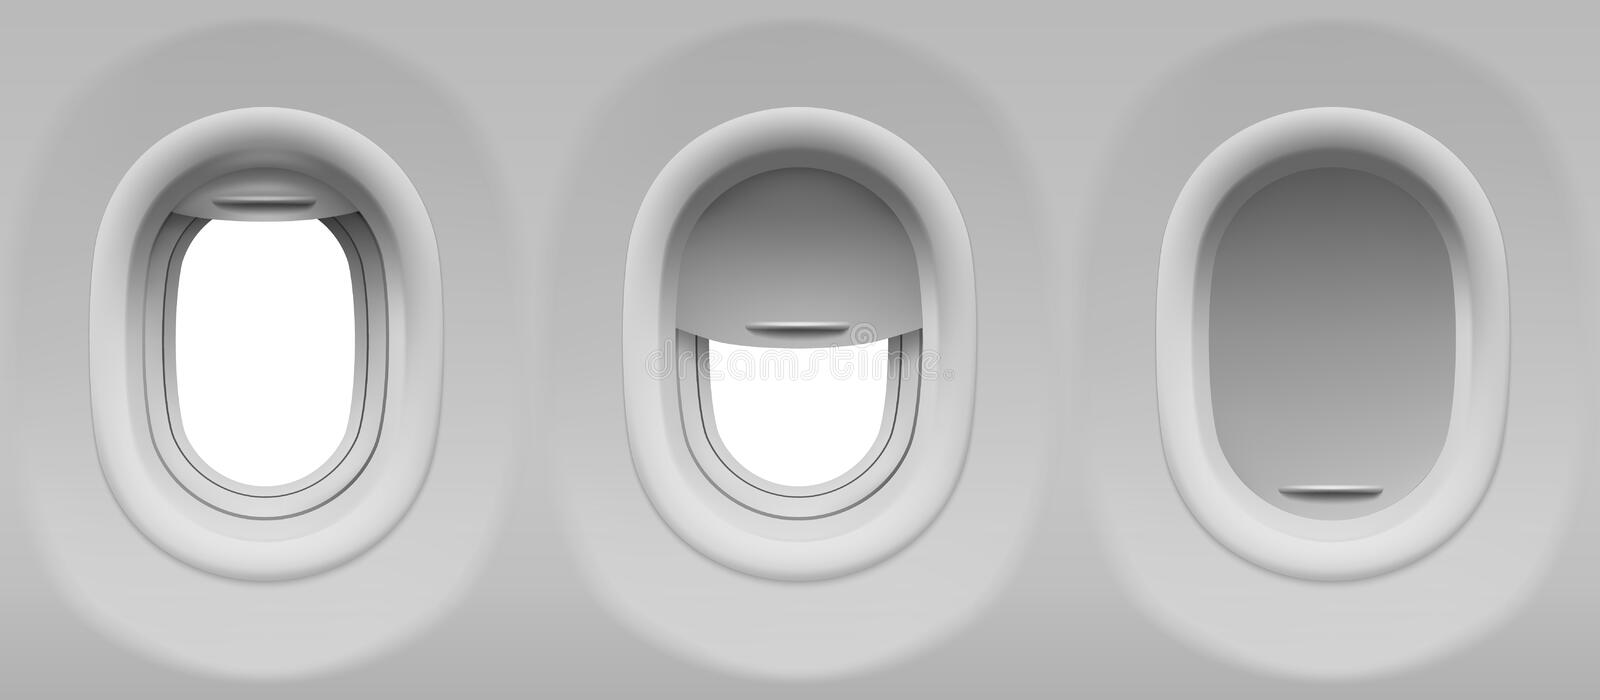 Airplane portholes. Aircraft windows. Three realistic airplane portholes with open and closed shade. Vector template of plane interior illuminators with white stock illustration